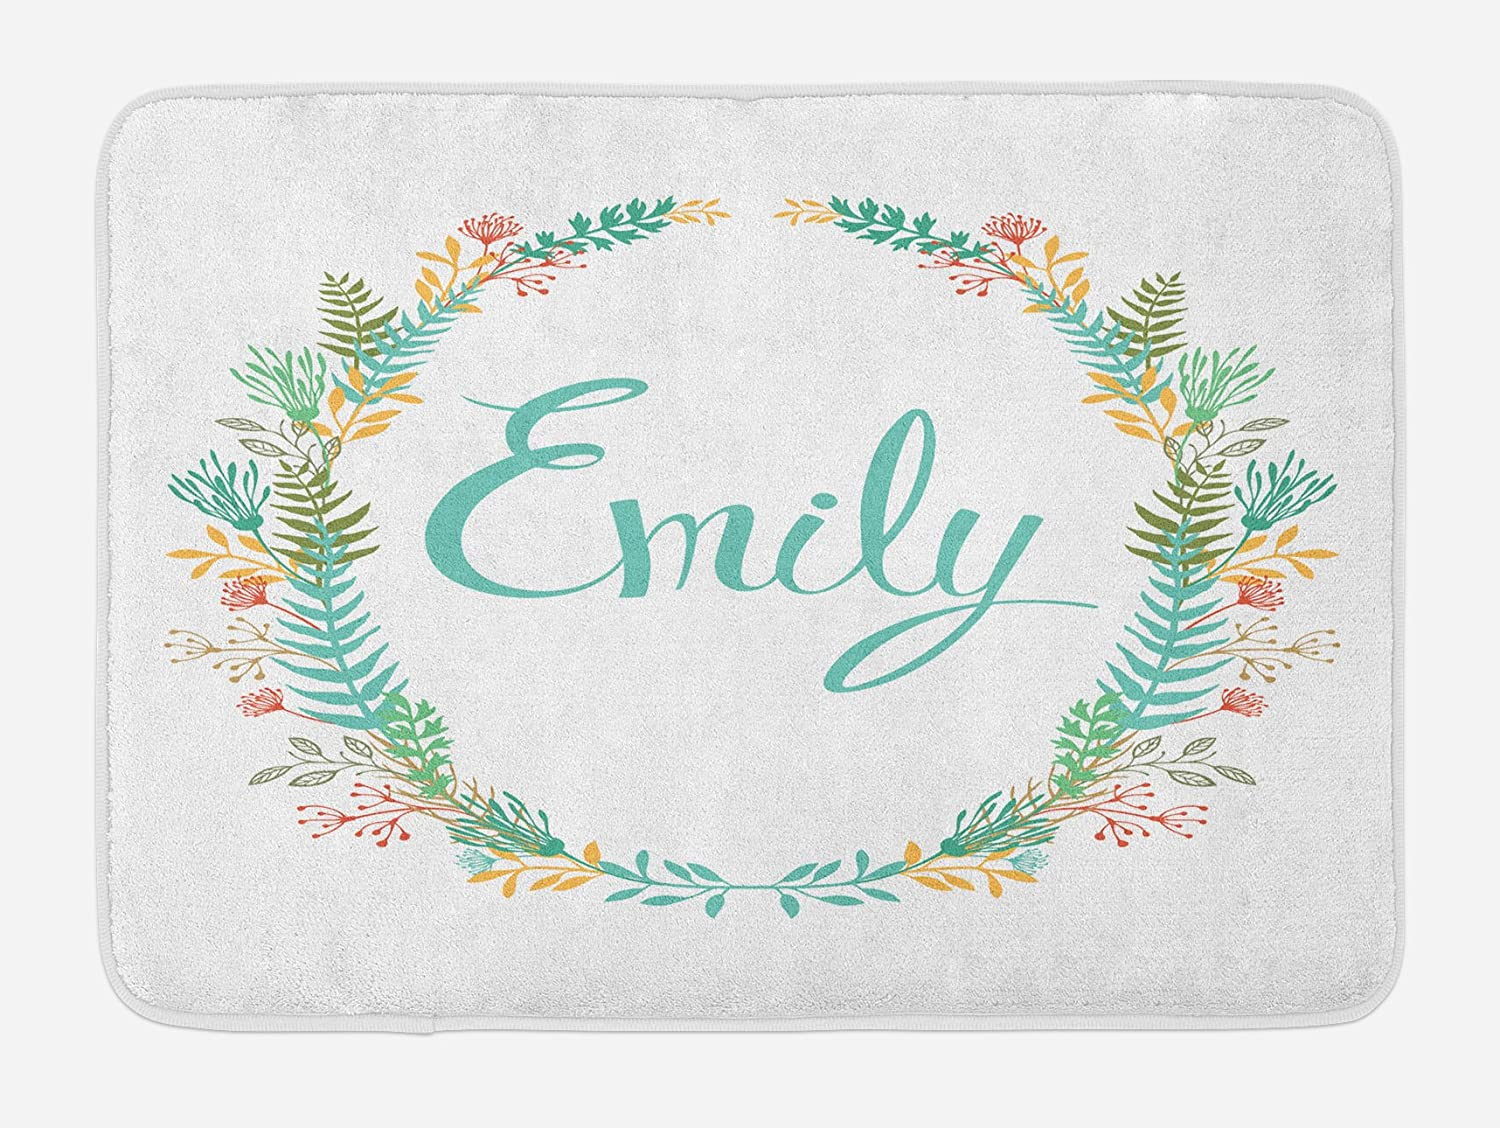 Ambesonne Emily Bath Mat, Composition of Popular English Girl Name with Vintage Design Inspirations Leaves, Plush Bathroom Decor Mat with Non Slip Backing, 29.5